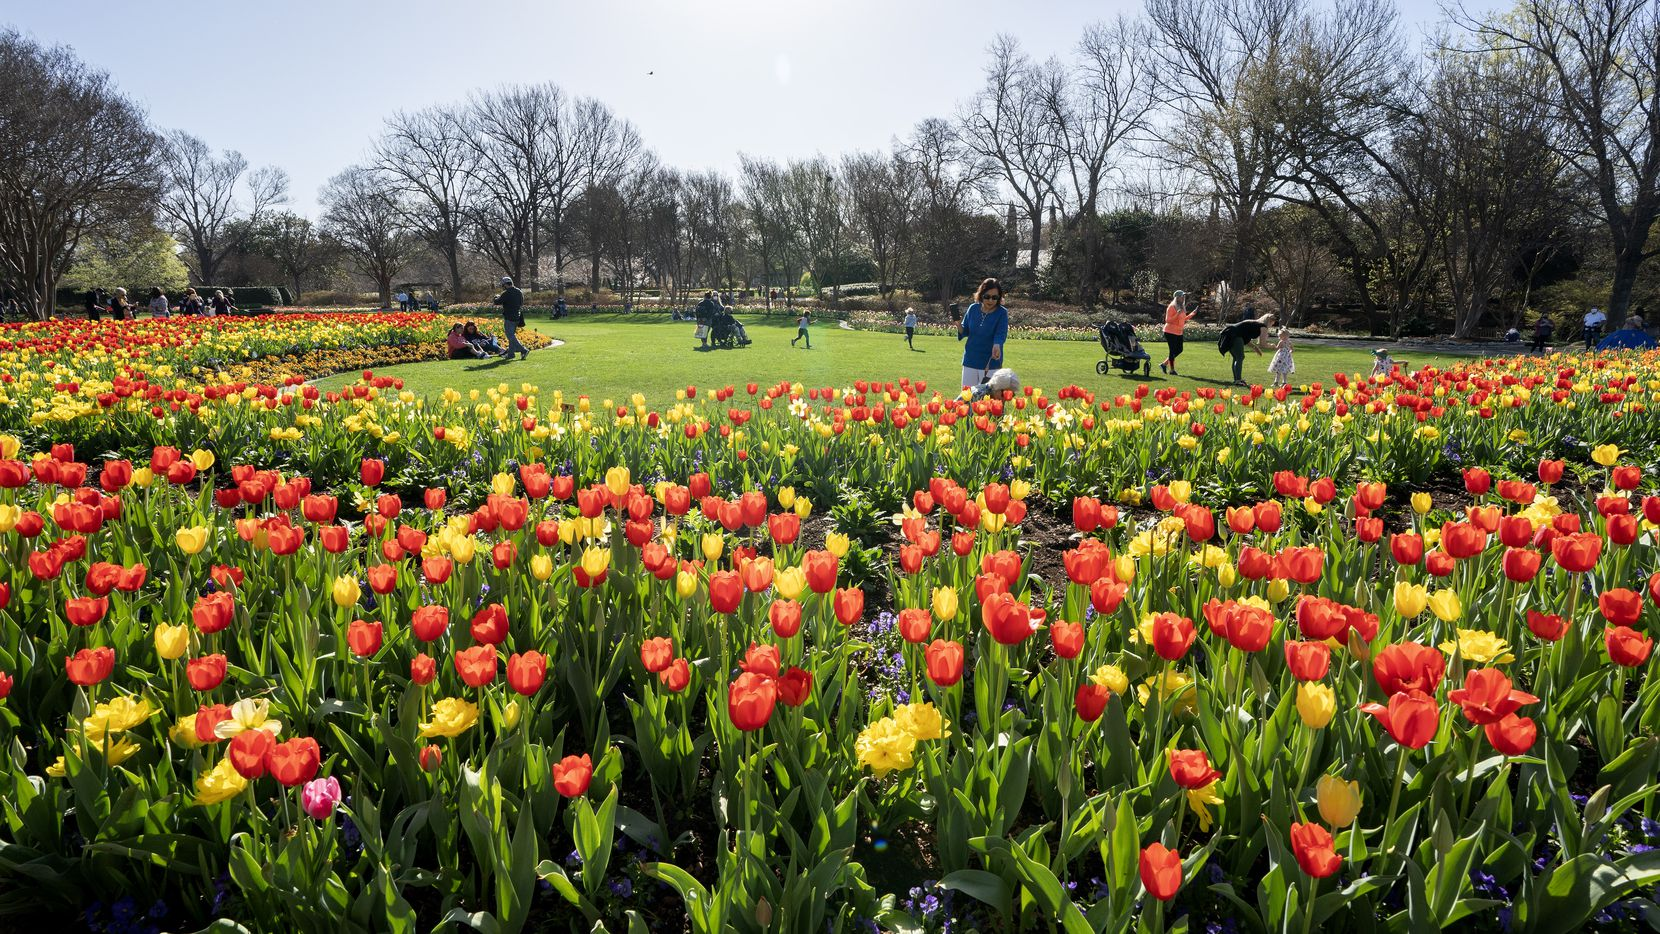 Visitors at the Dallas Arboretum walk among tulip blossoms in March during the Dallas Blooms festival.